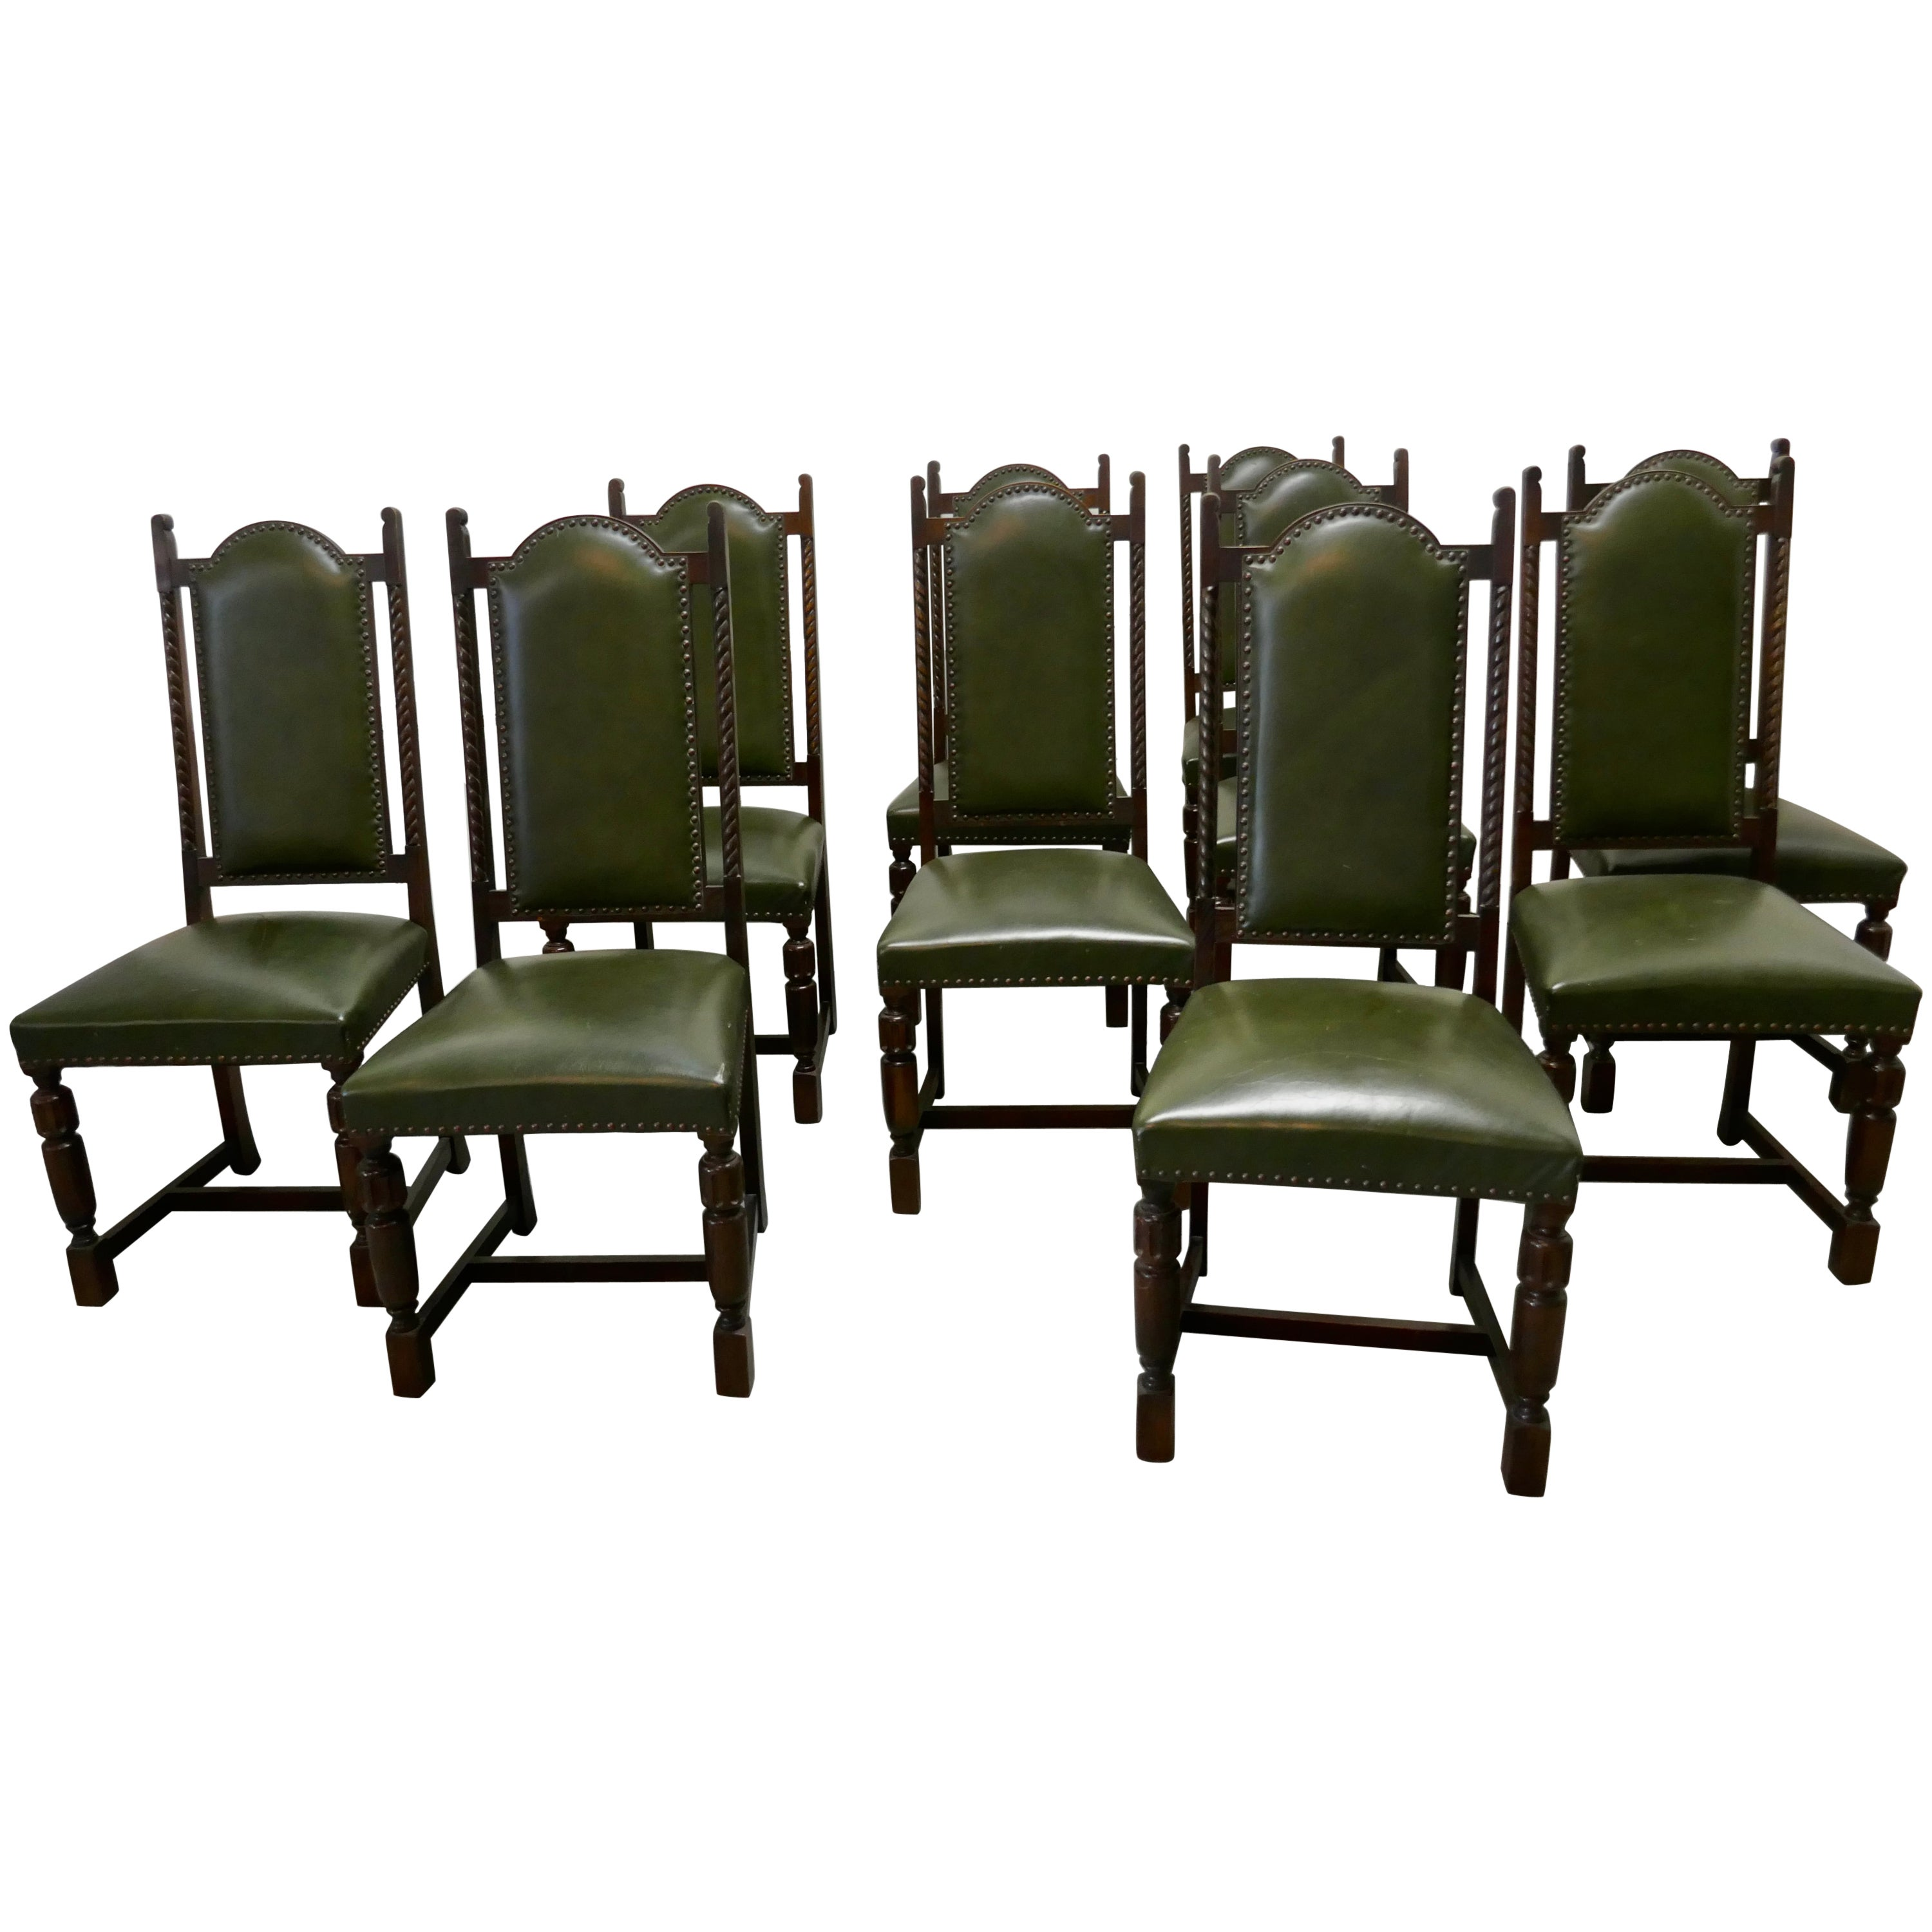 Set of 10 Arts & Crafts Oak and Leather Dining Chairs